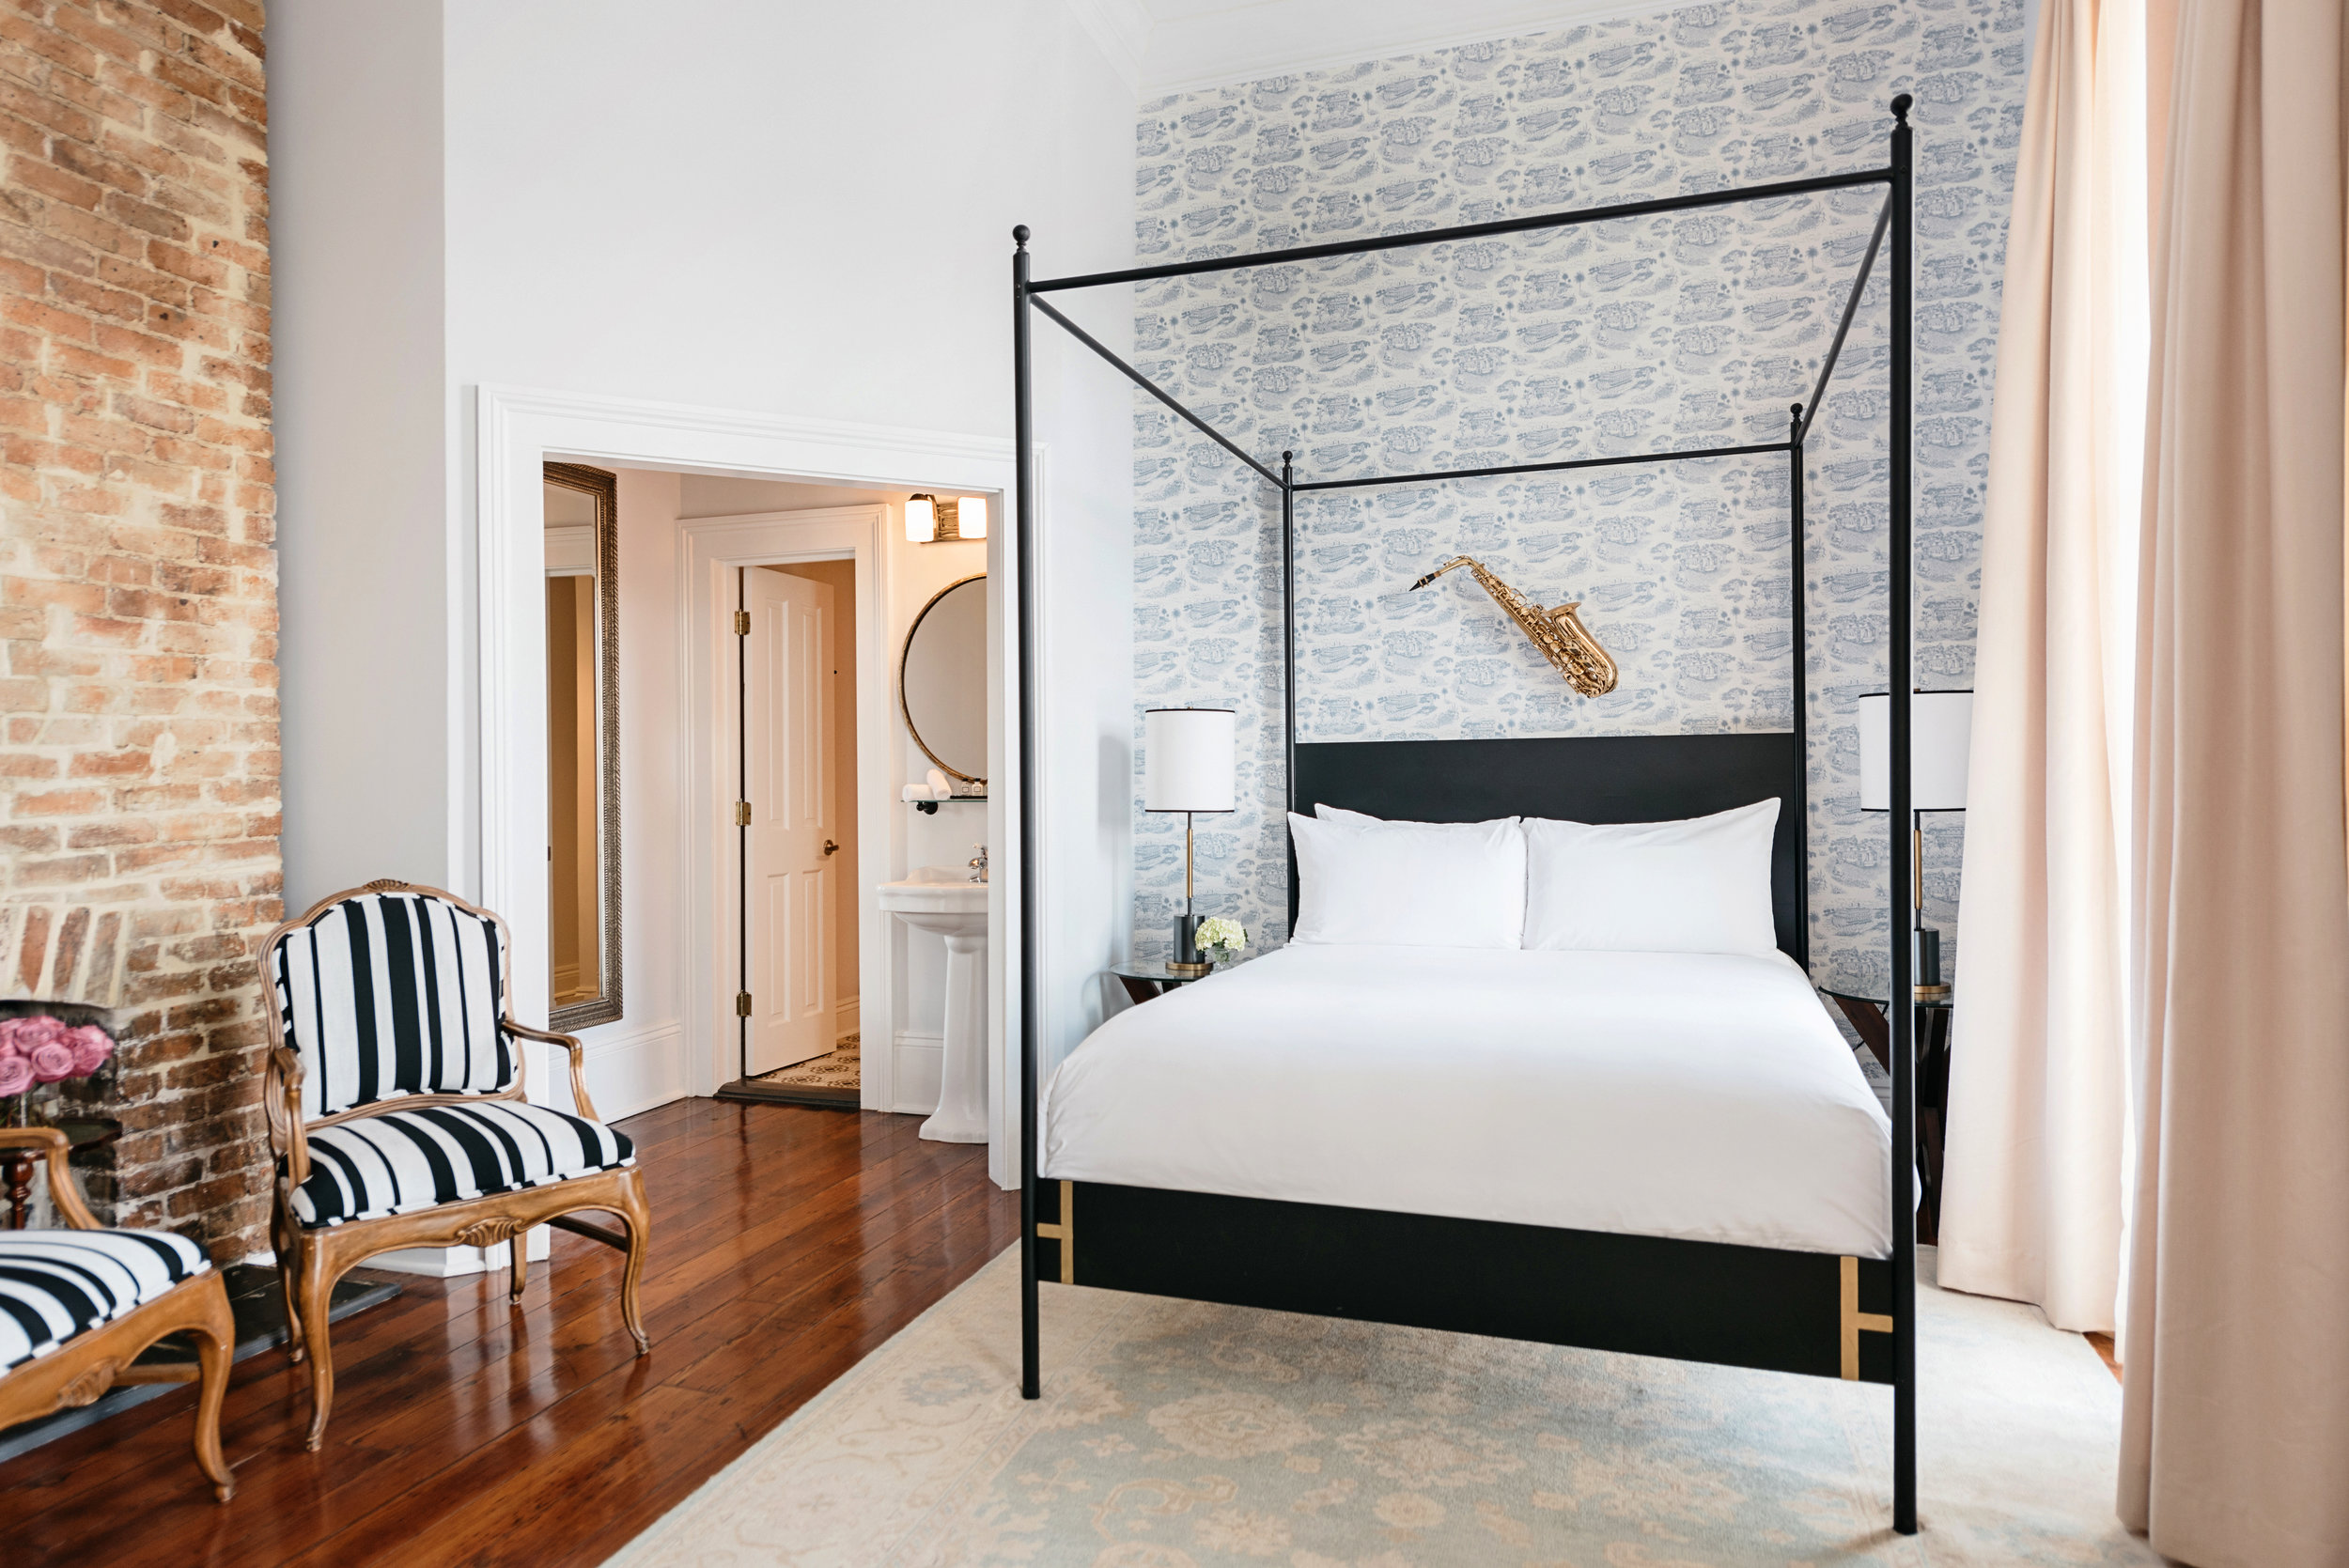 queen royal - Sleeps two in a Queen sculptural iron canopy bed with the highest-quality linens. Relaxing seating area, 12-foot ceilings, antique armoires, and floor-to-ceiling windows. Antique architectural surprises throughout.